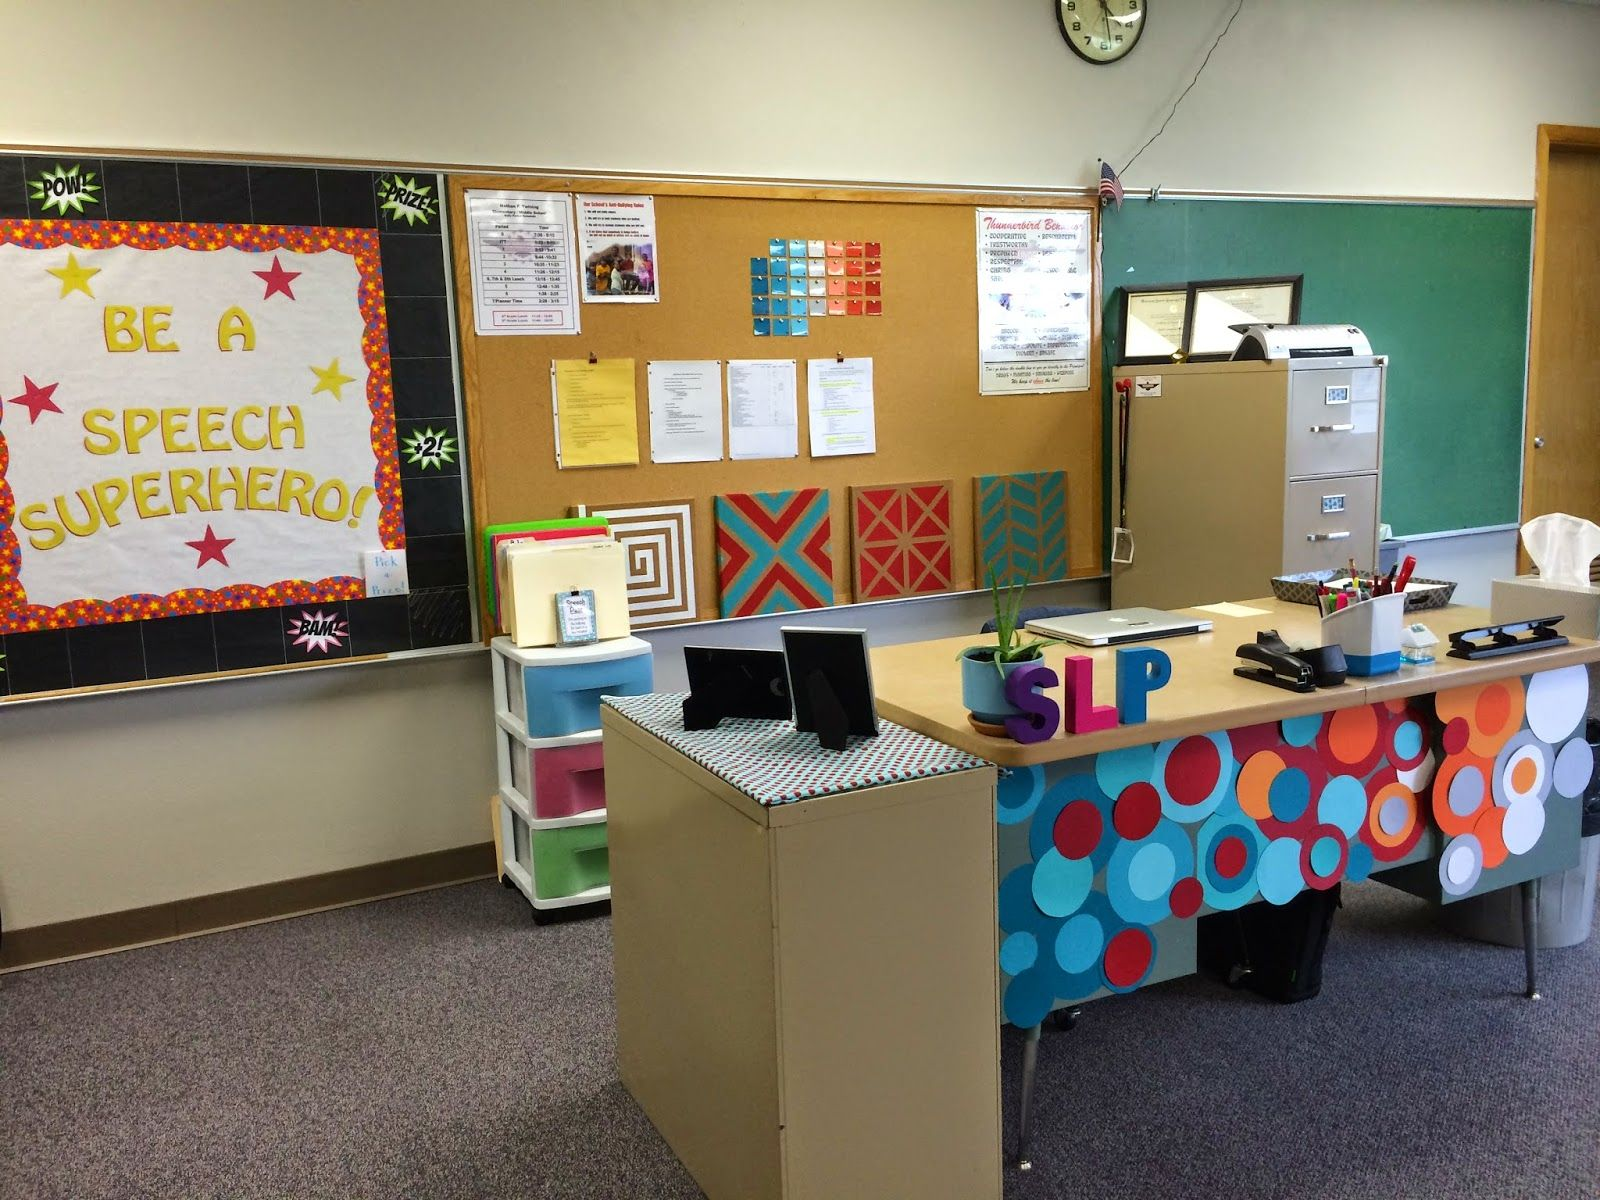 Decorating Room With Posters Space For Speech Decorating Your Large Classroom With Speech